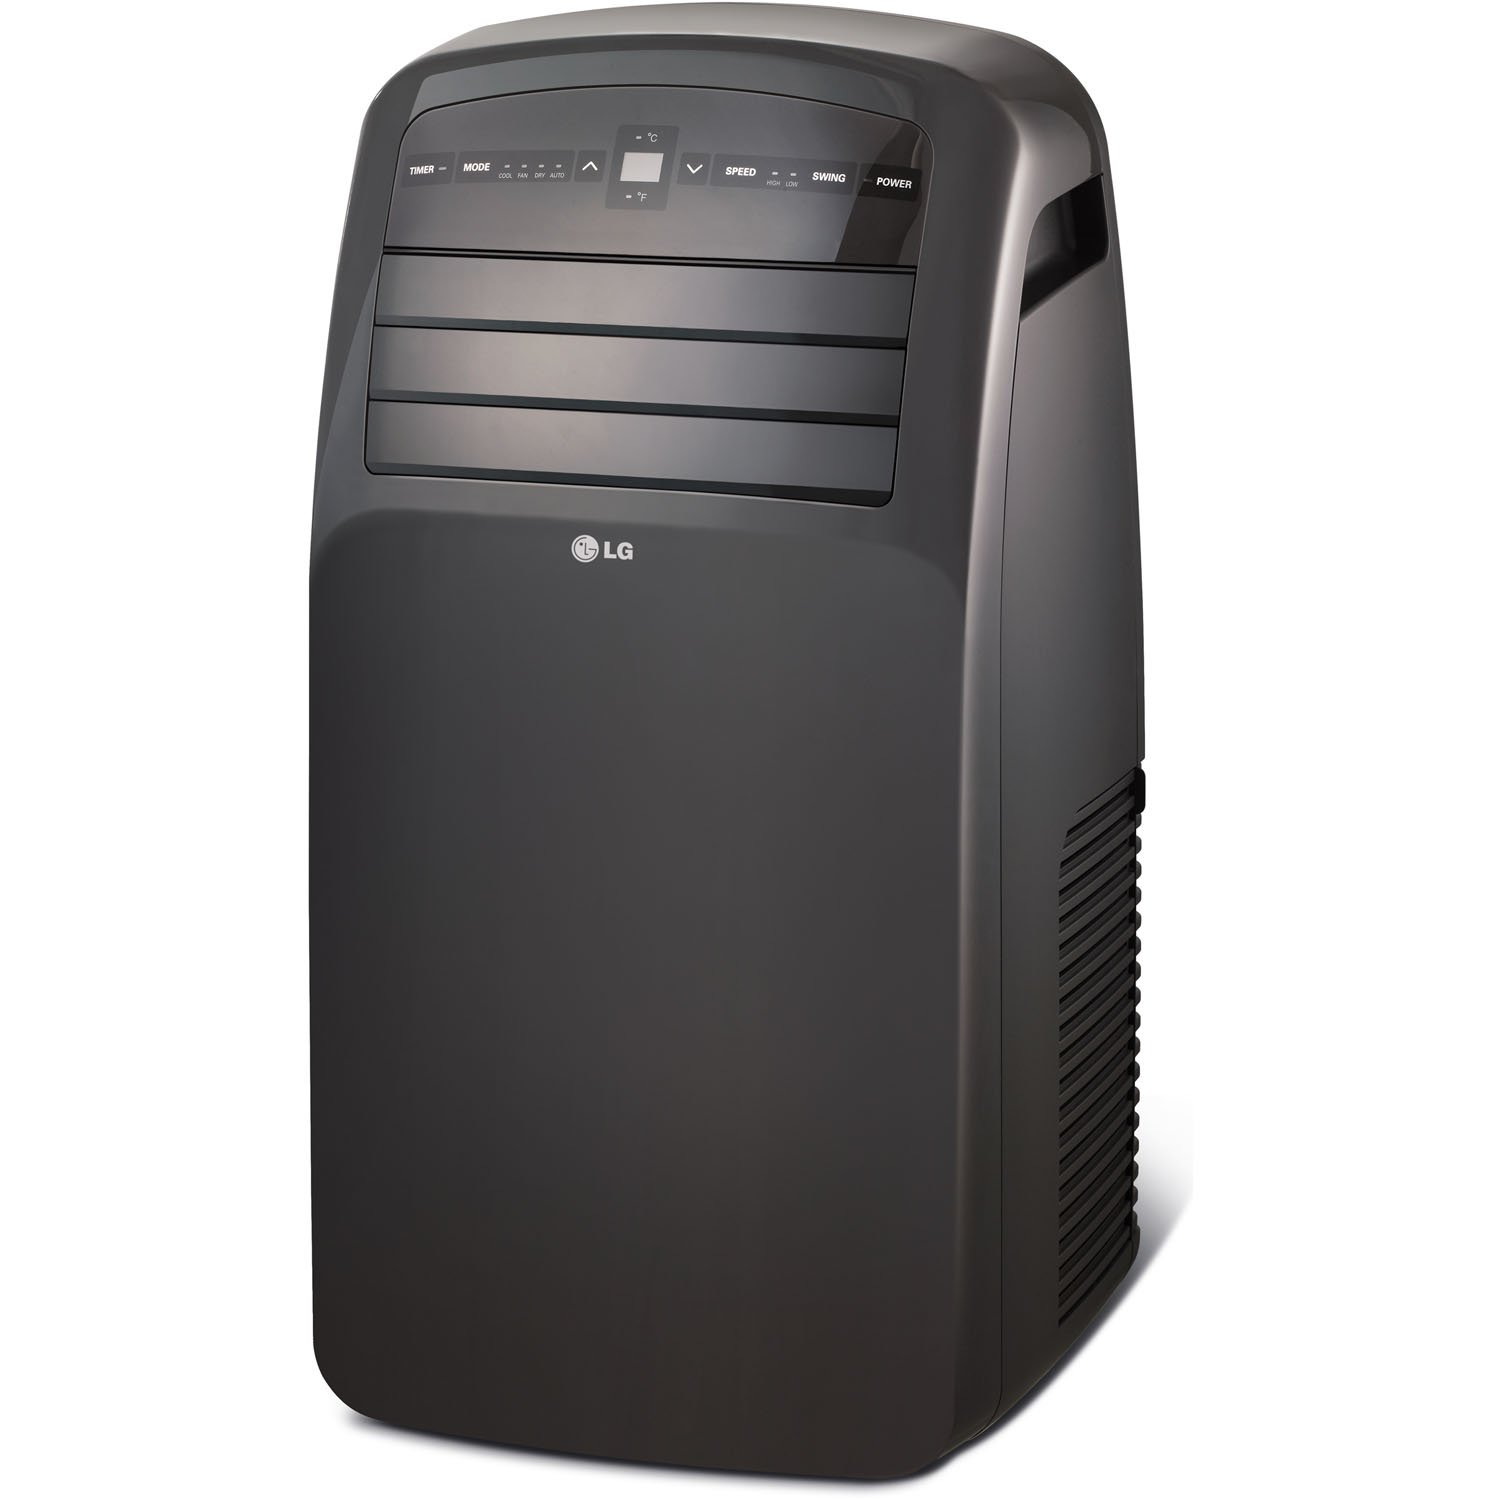 Lg Lp1417gsr 115v Portable Air Conditioner With Remote Control Circuit Board For Ac And In Graphite Gray Rooms Up To 400 Sq Ft Home Kitchen